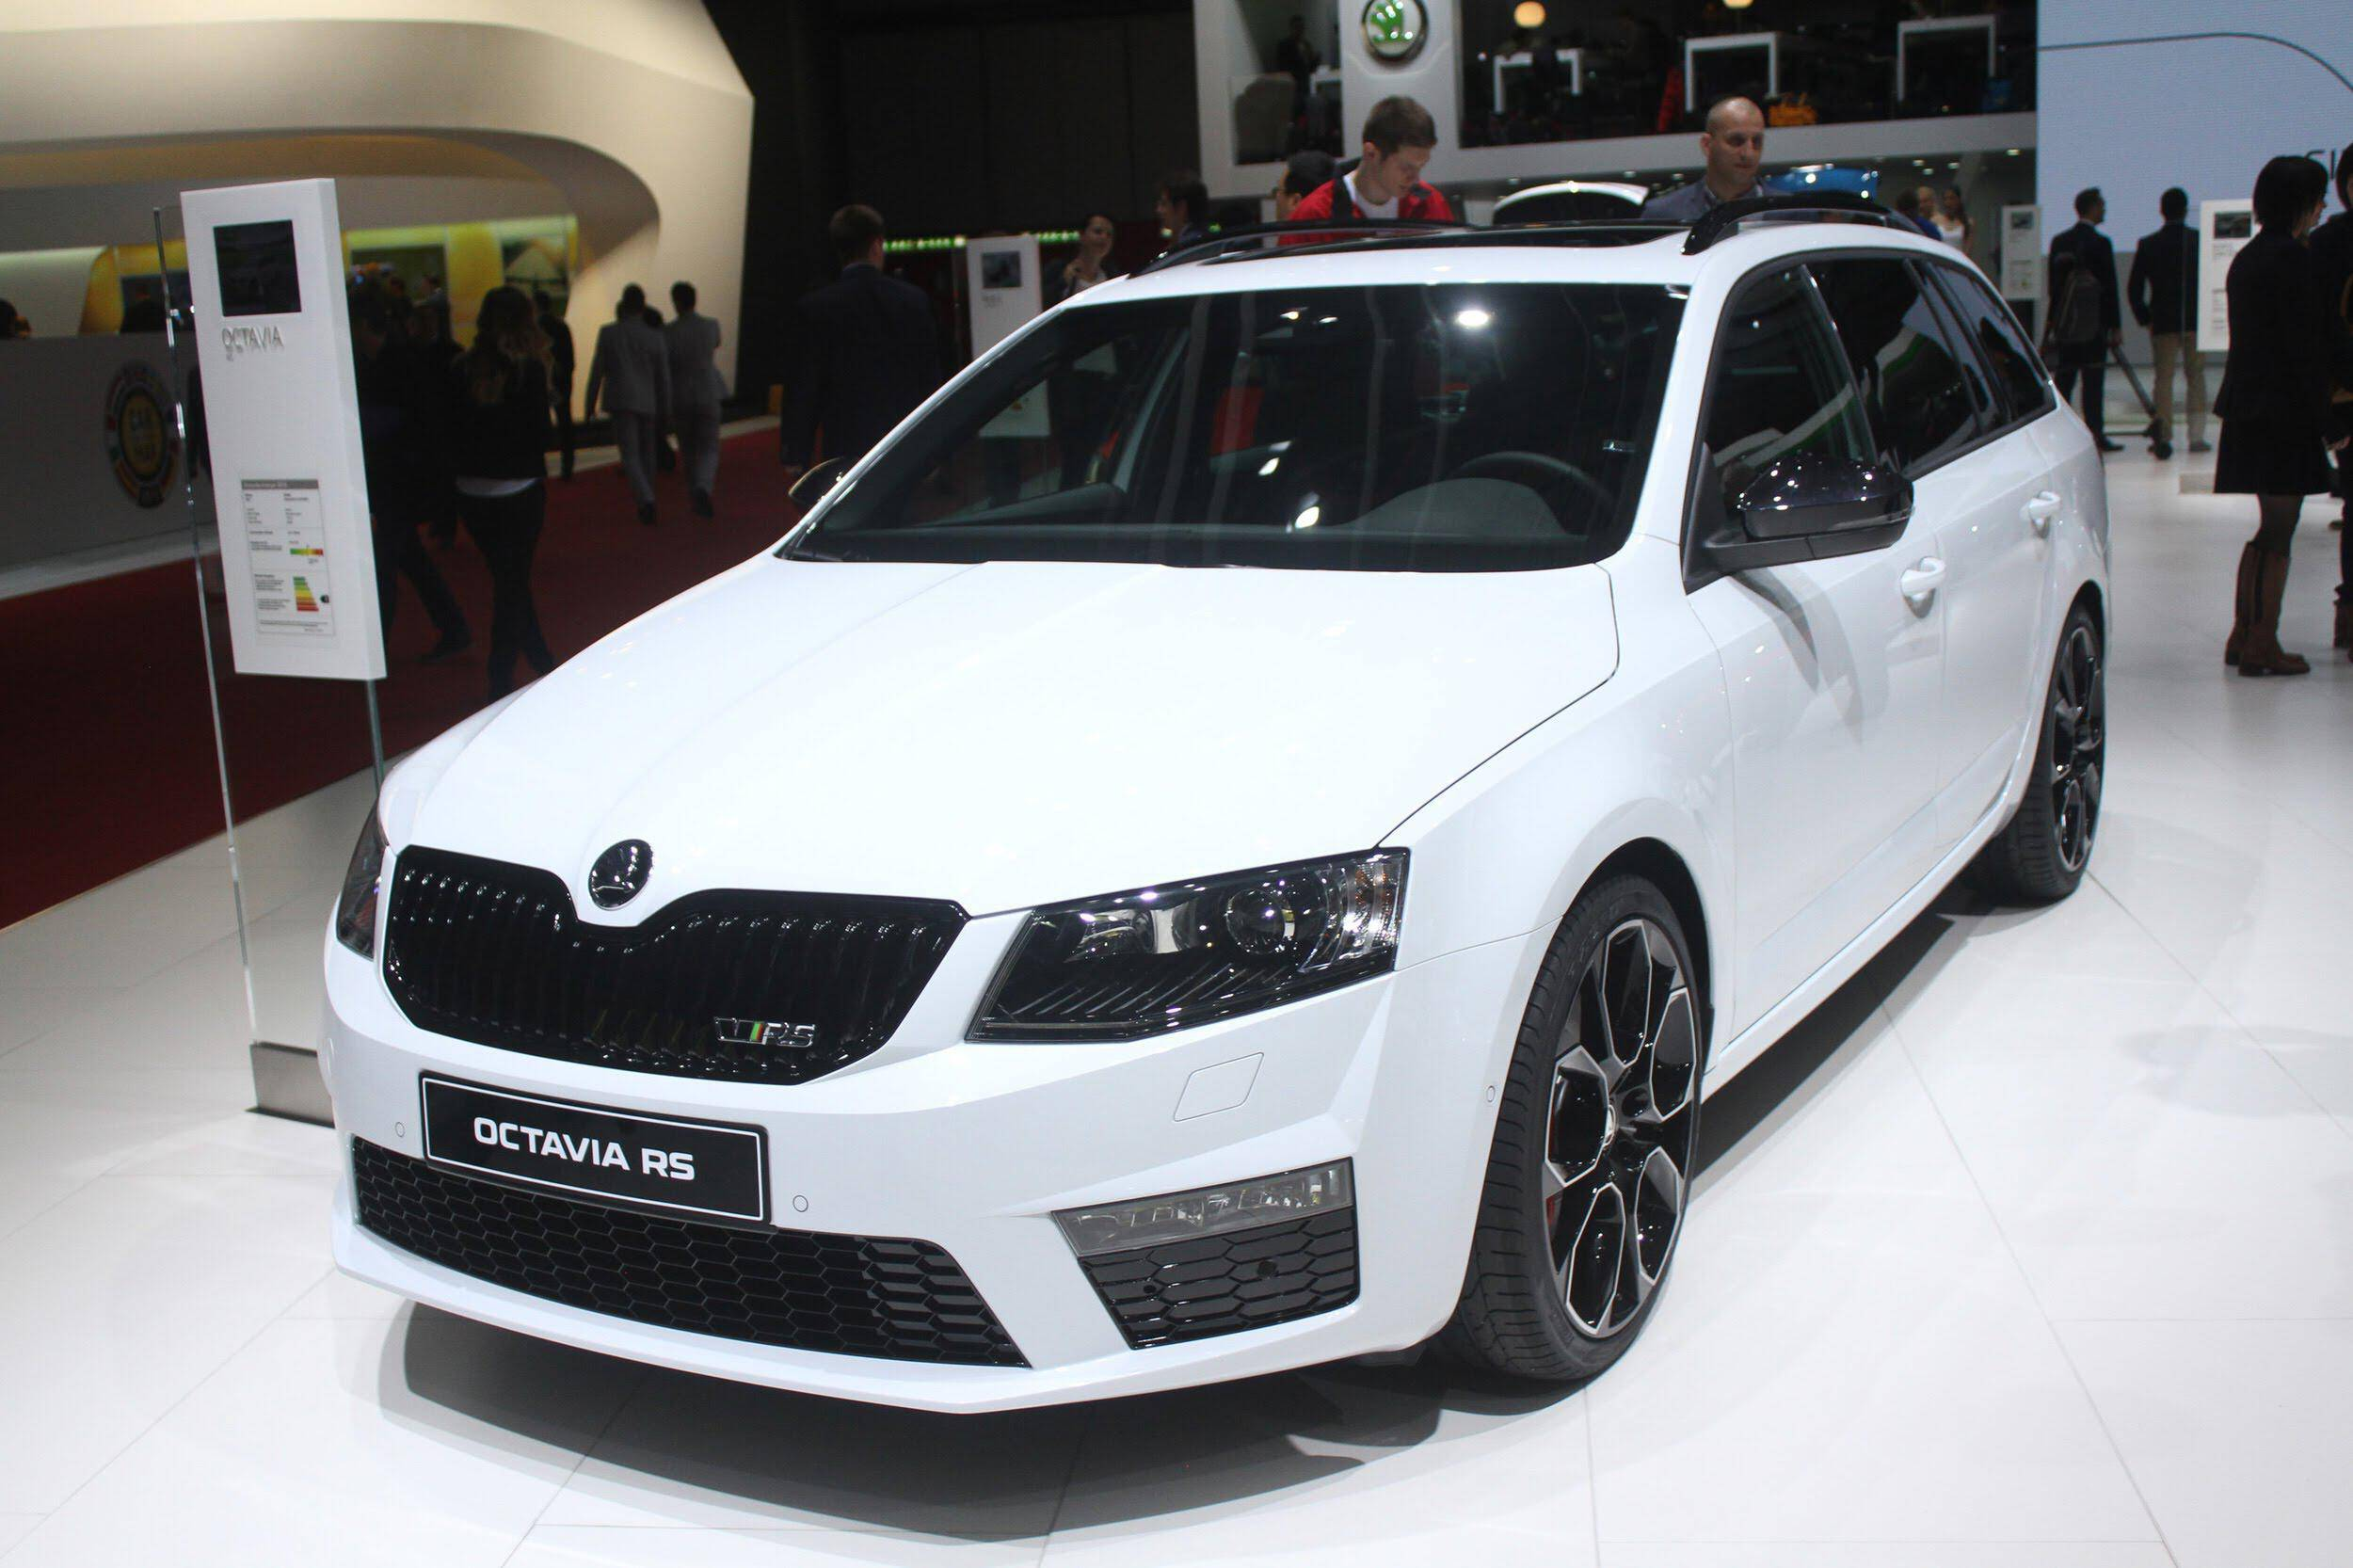 2016 skoda octavia rs 230 combi 2015 geneva motor show auto photo news. Black Bedroom Furniture Sets. Home Design Ideas